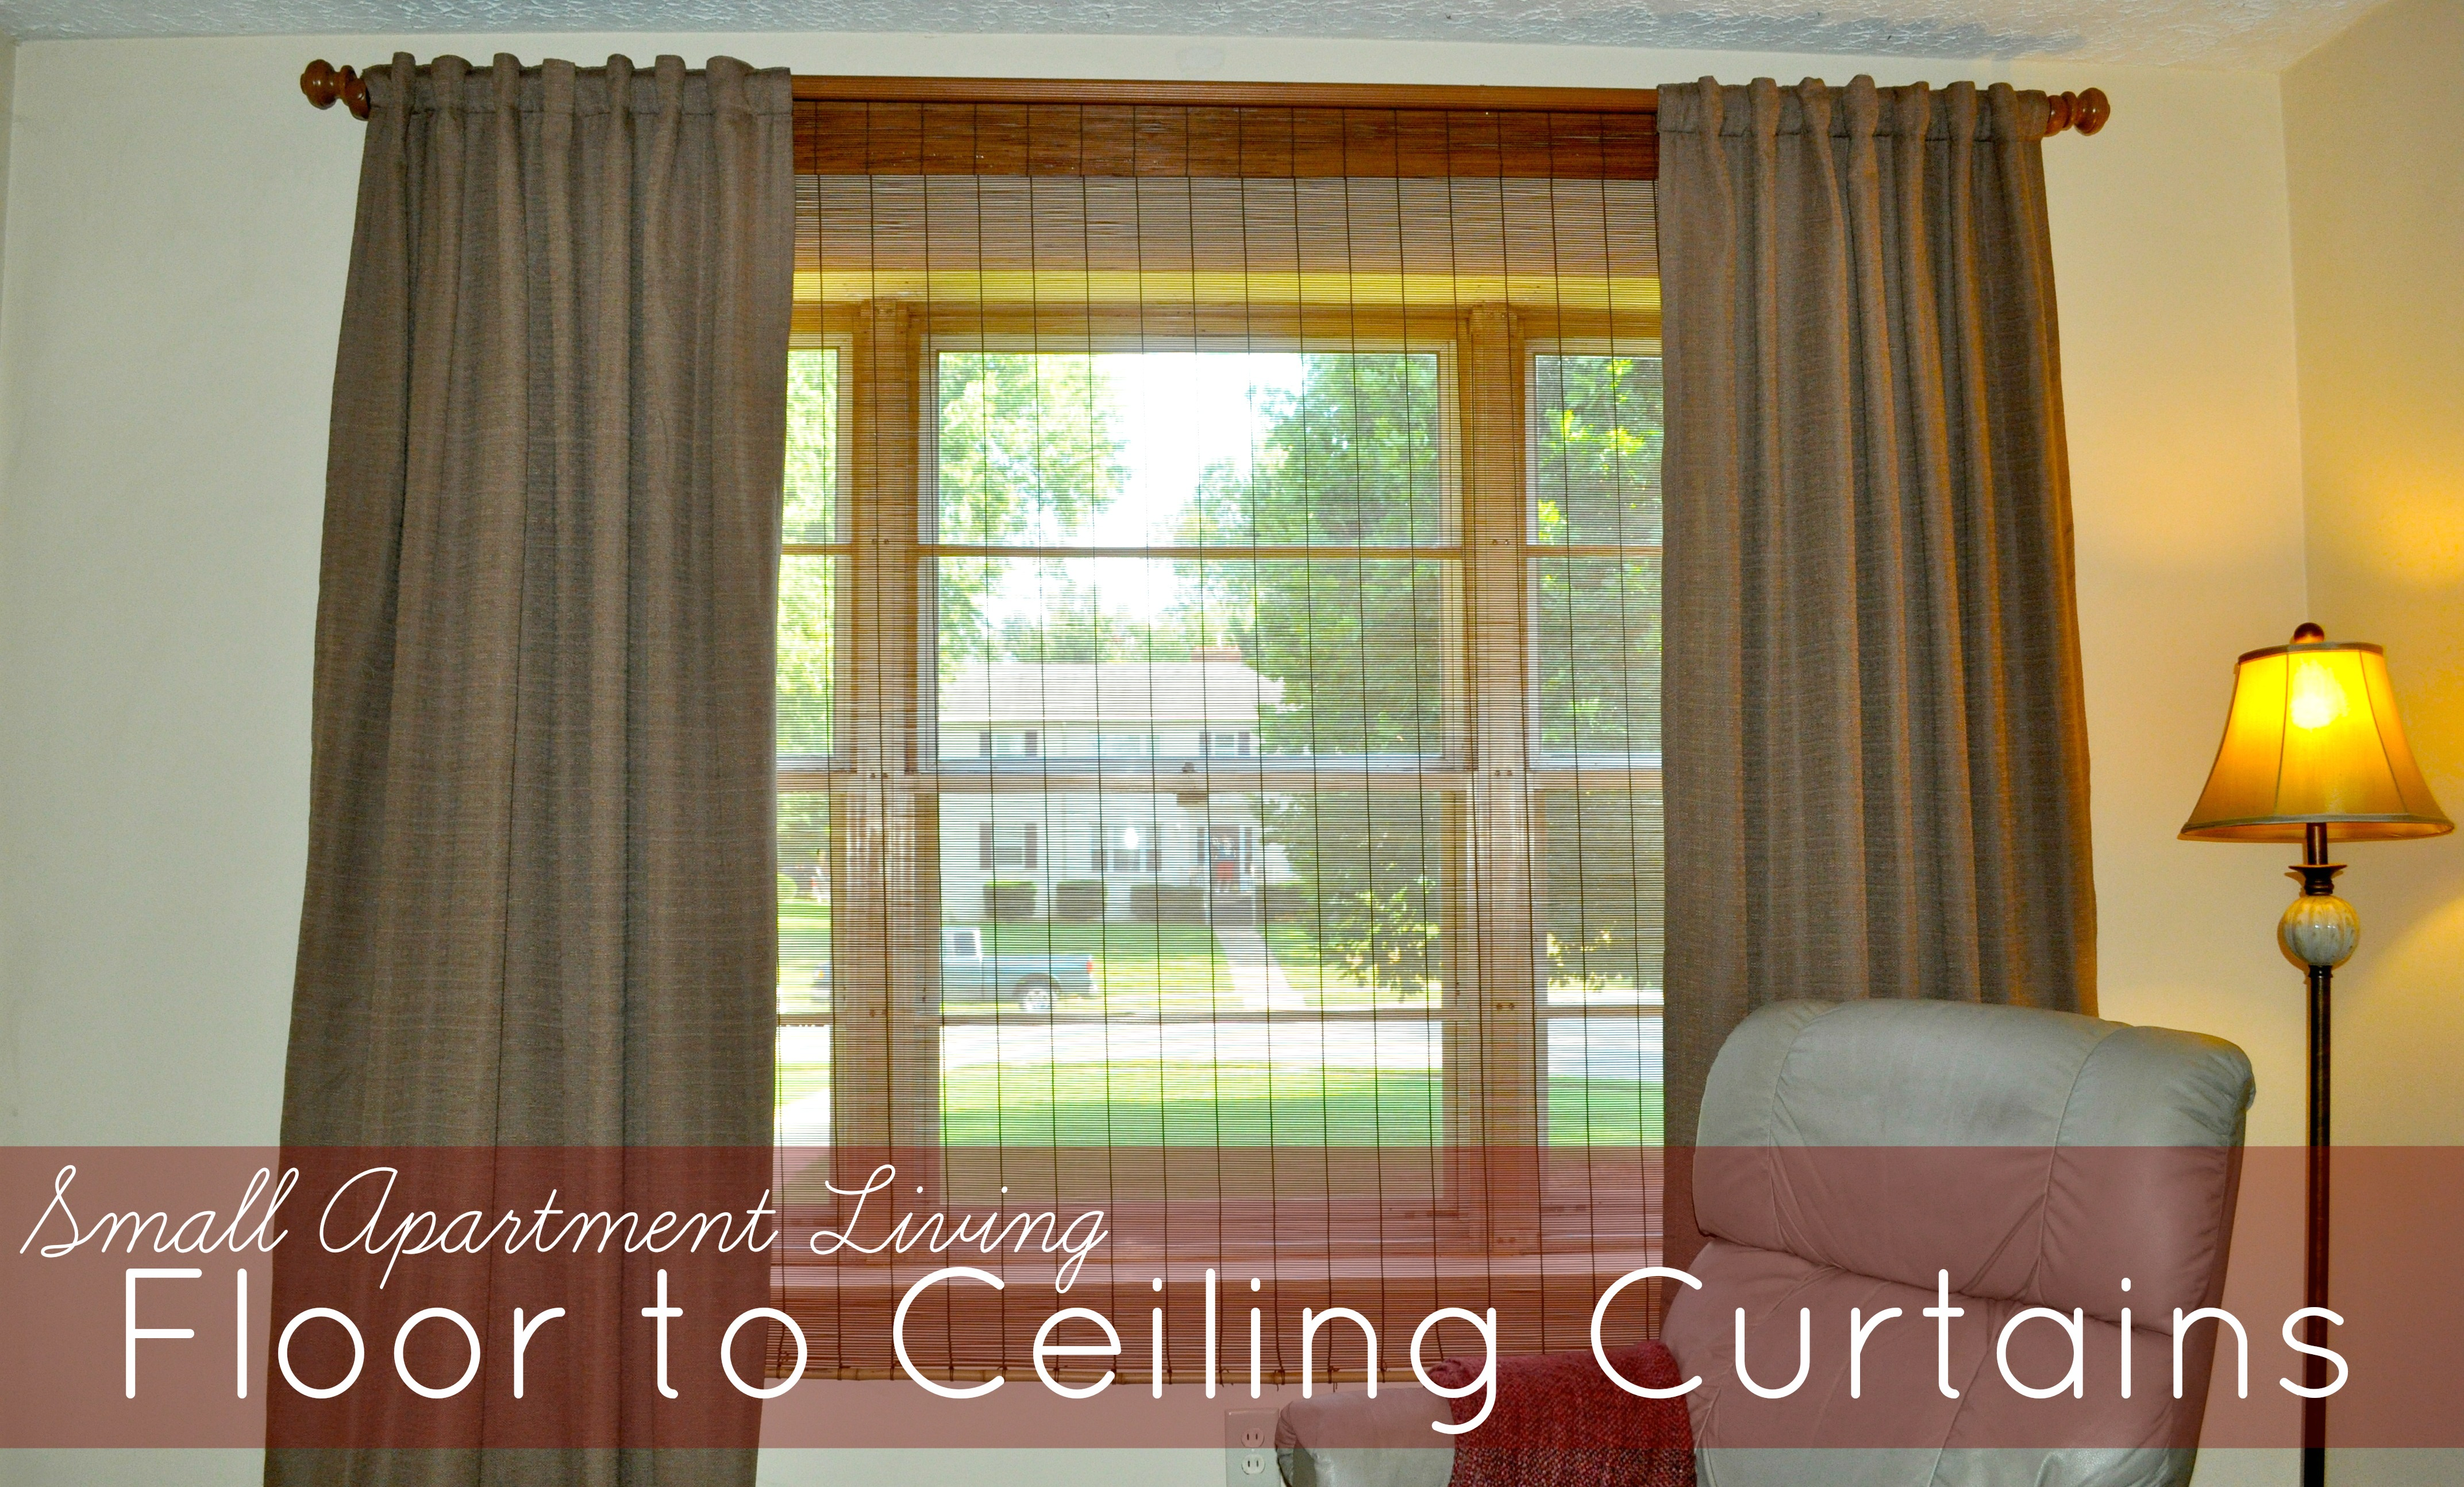 small apartment living: floor to ceiling curtains - to the heights